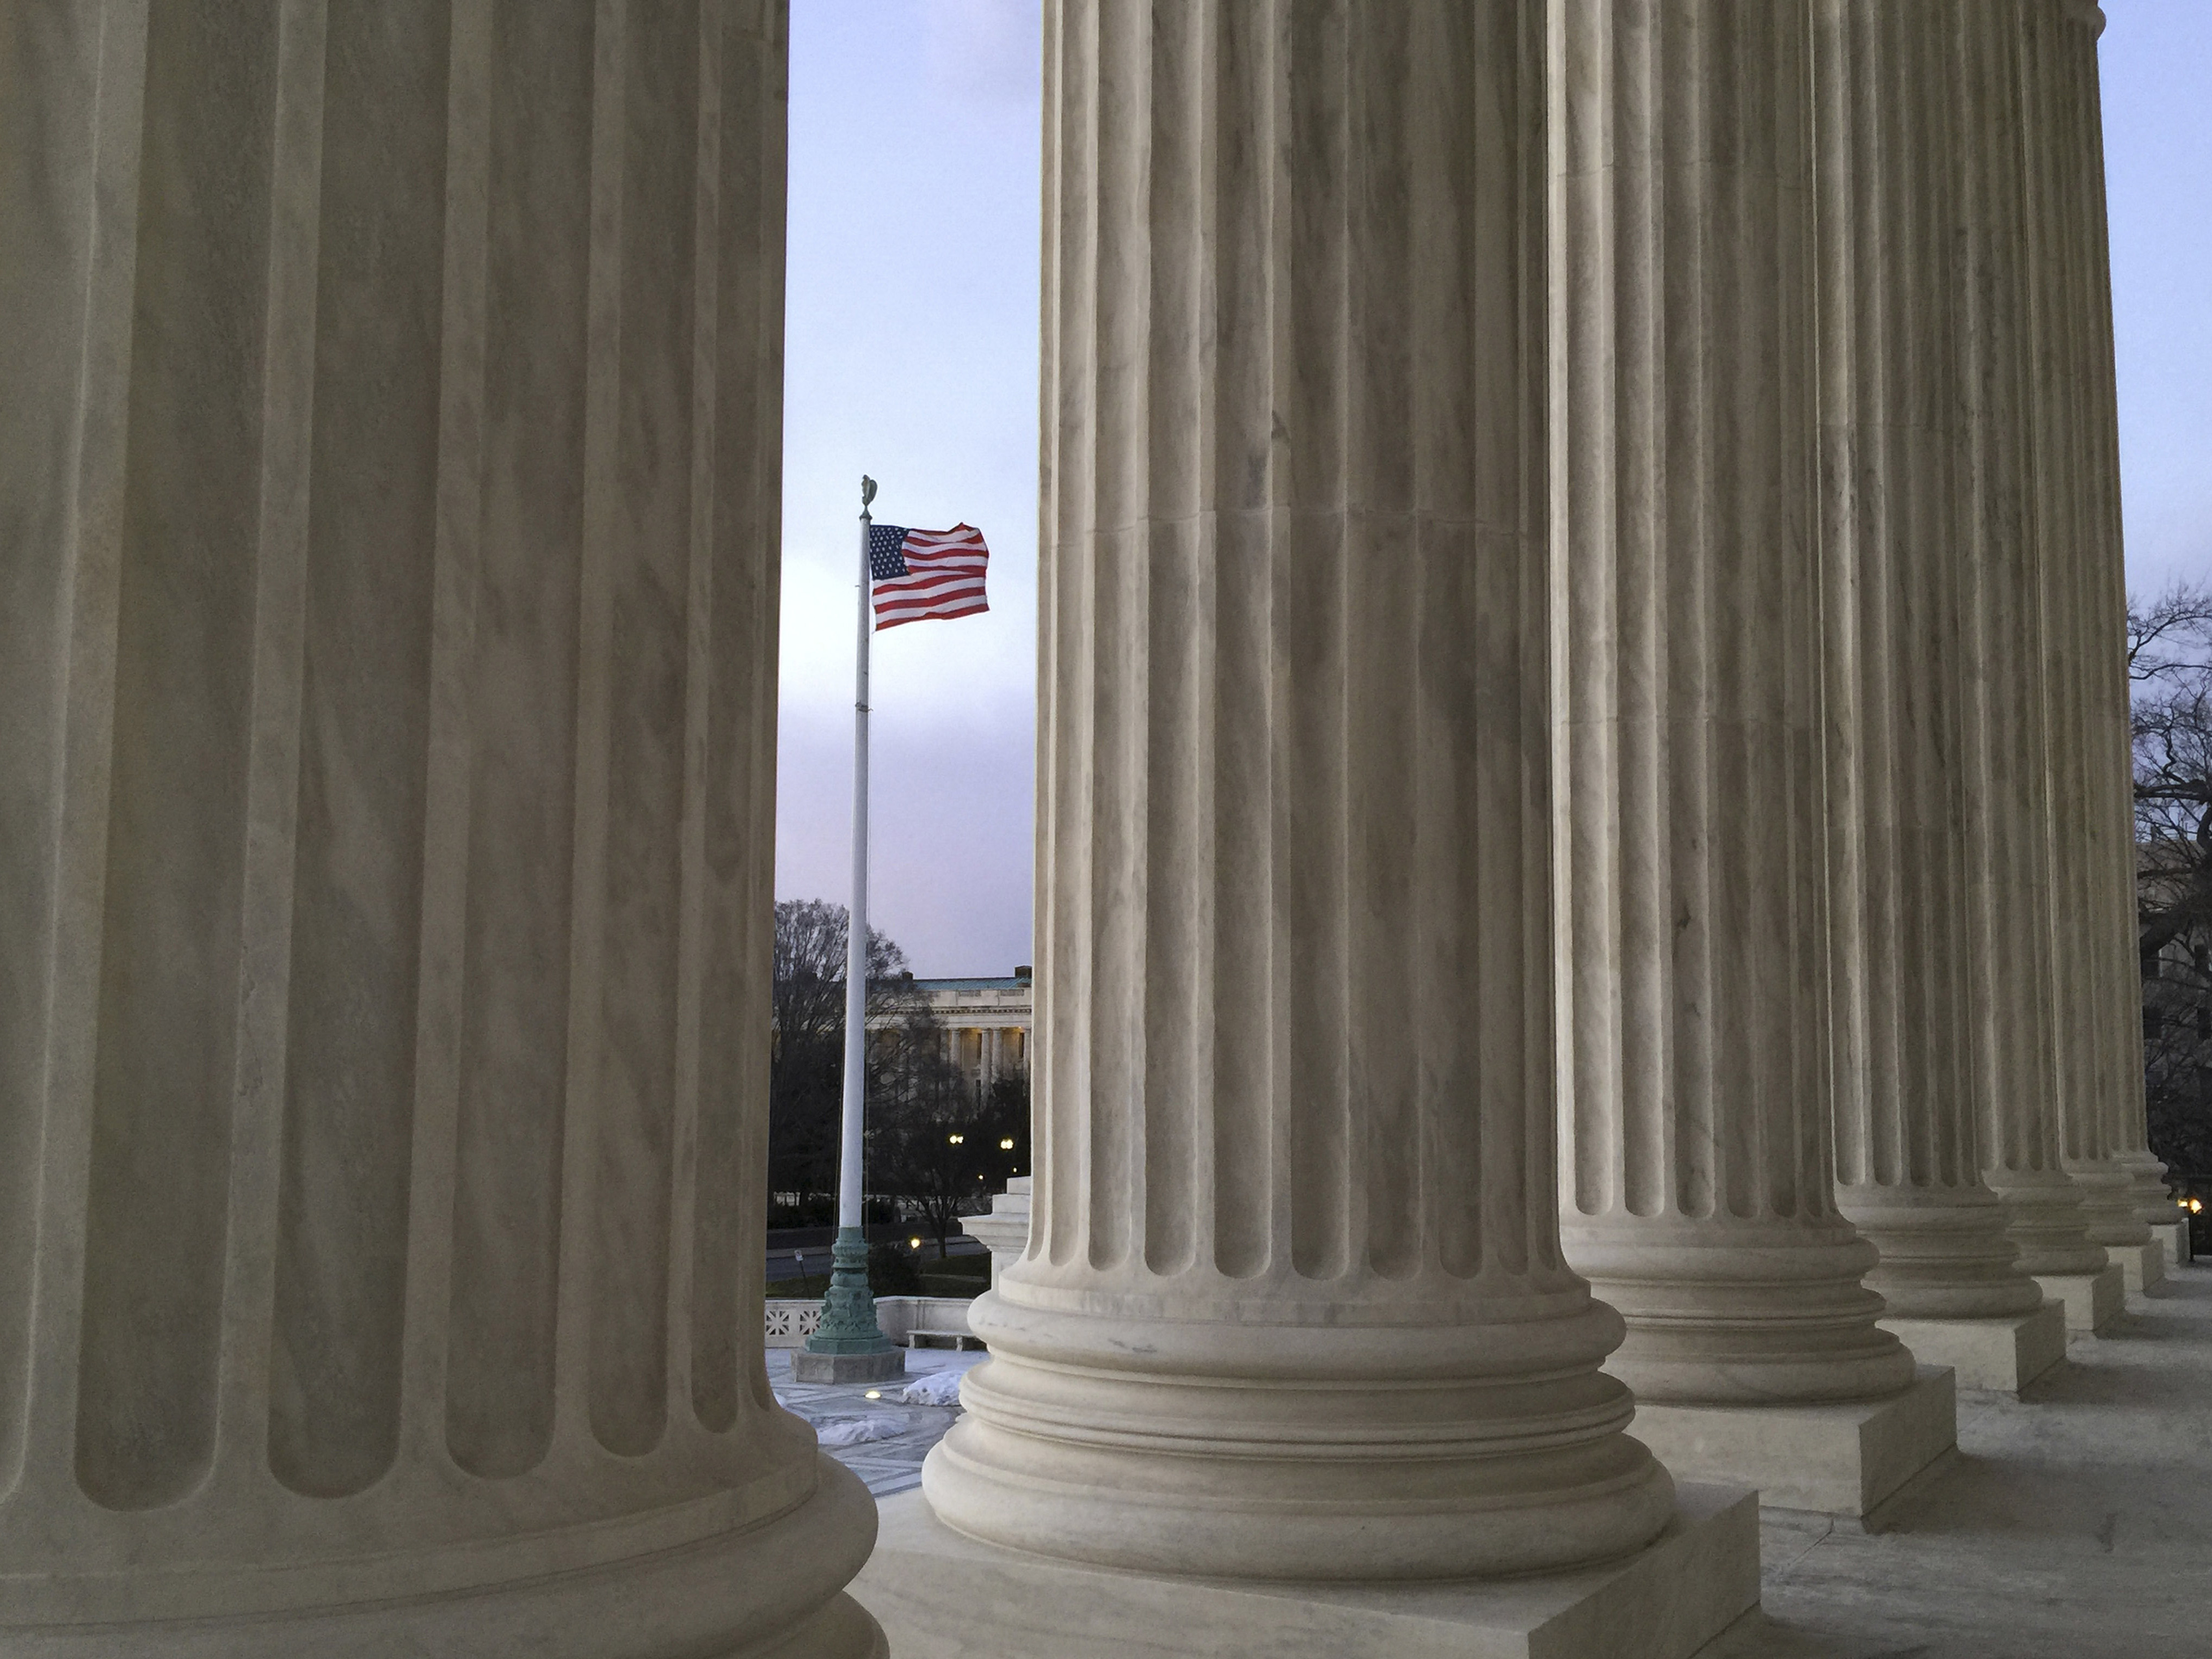 The American flag, seen through the columns of the Supreme Court building, blows in the wind on Feb. 13. (Jon Elswick/AP)